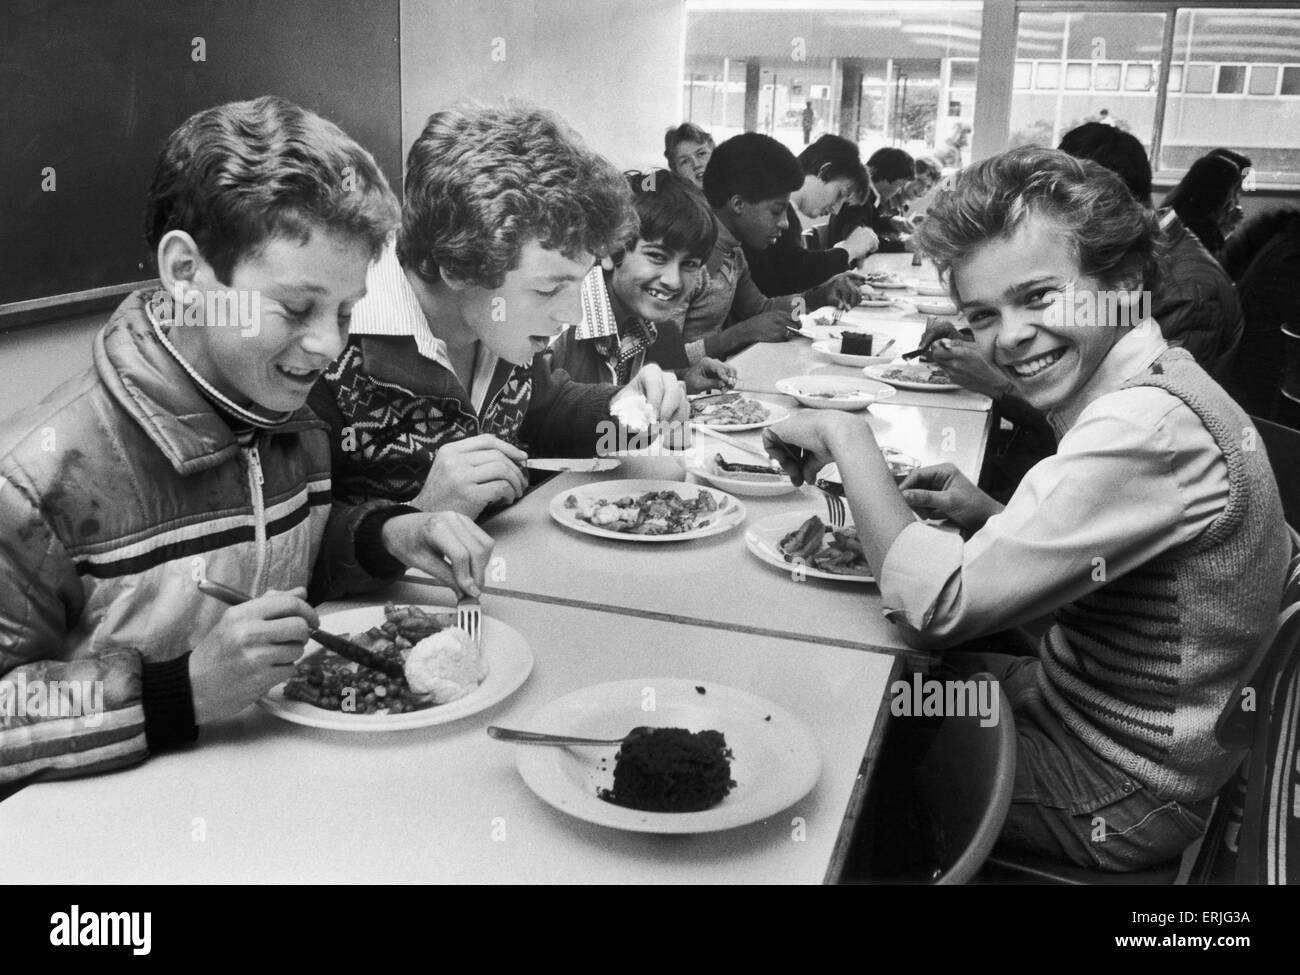 Pupils at the Sidney Stringer school, Coventry seen here enjoying their school dinner. 2nd October 1978 - Stock Image